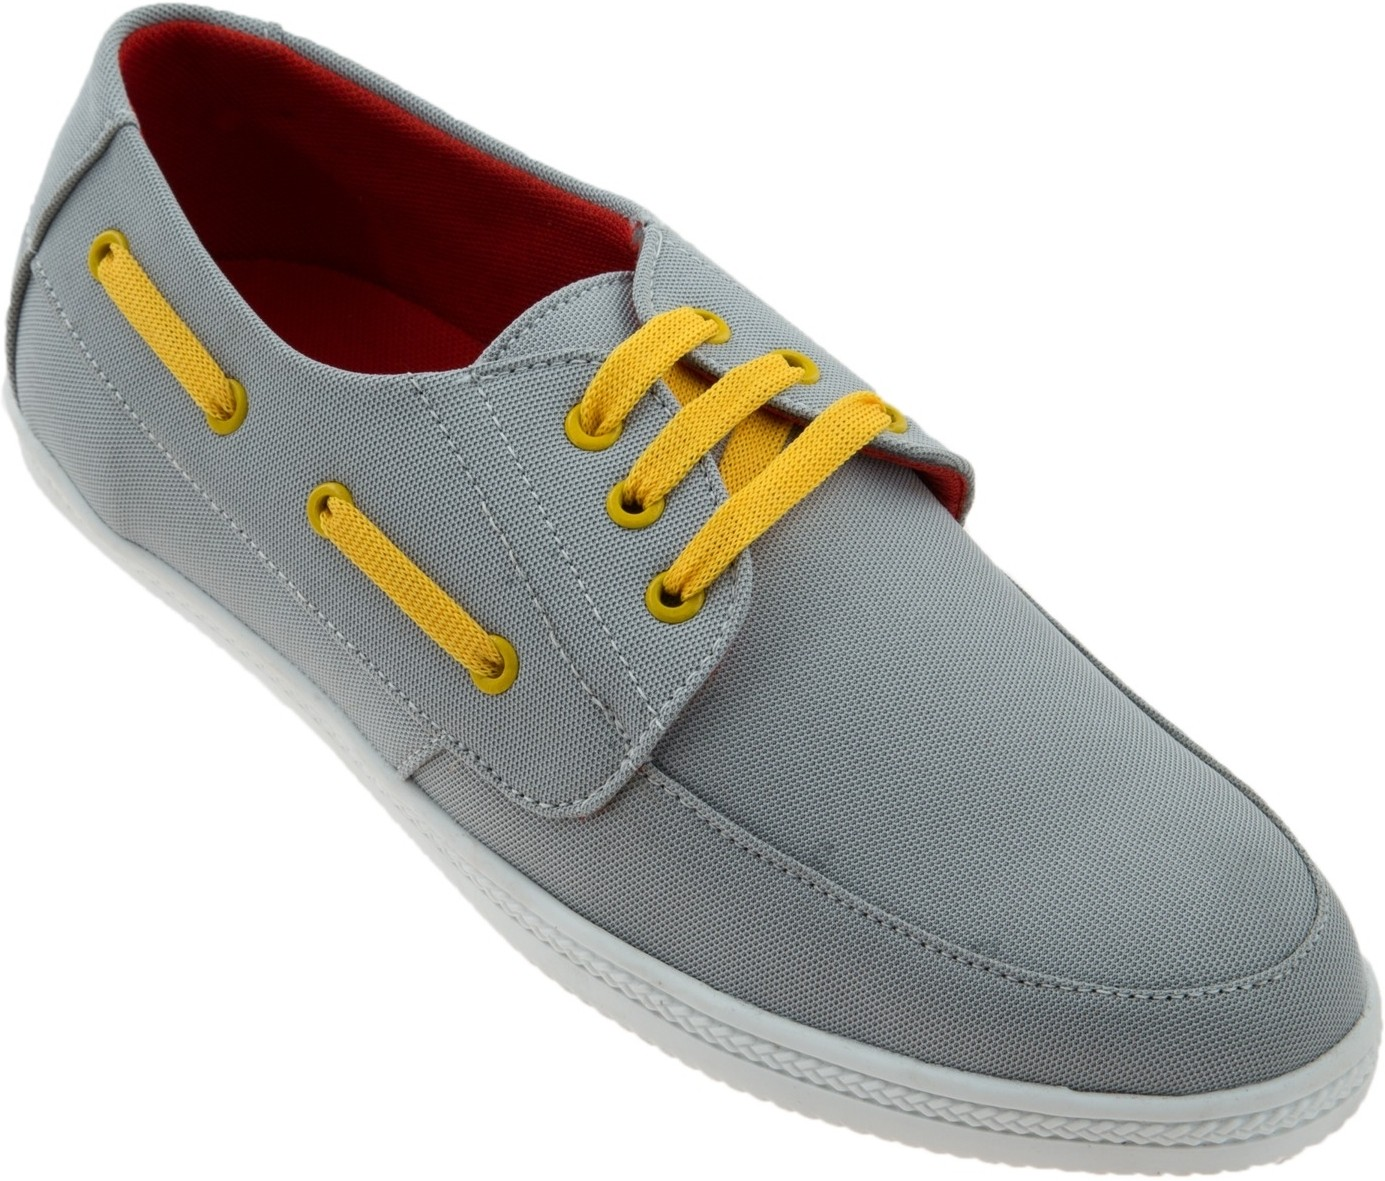 Zovi Grey Laceup with Yellow Laced Sneakers(Grey)